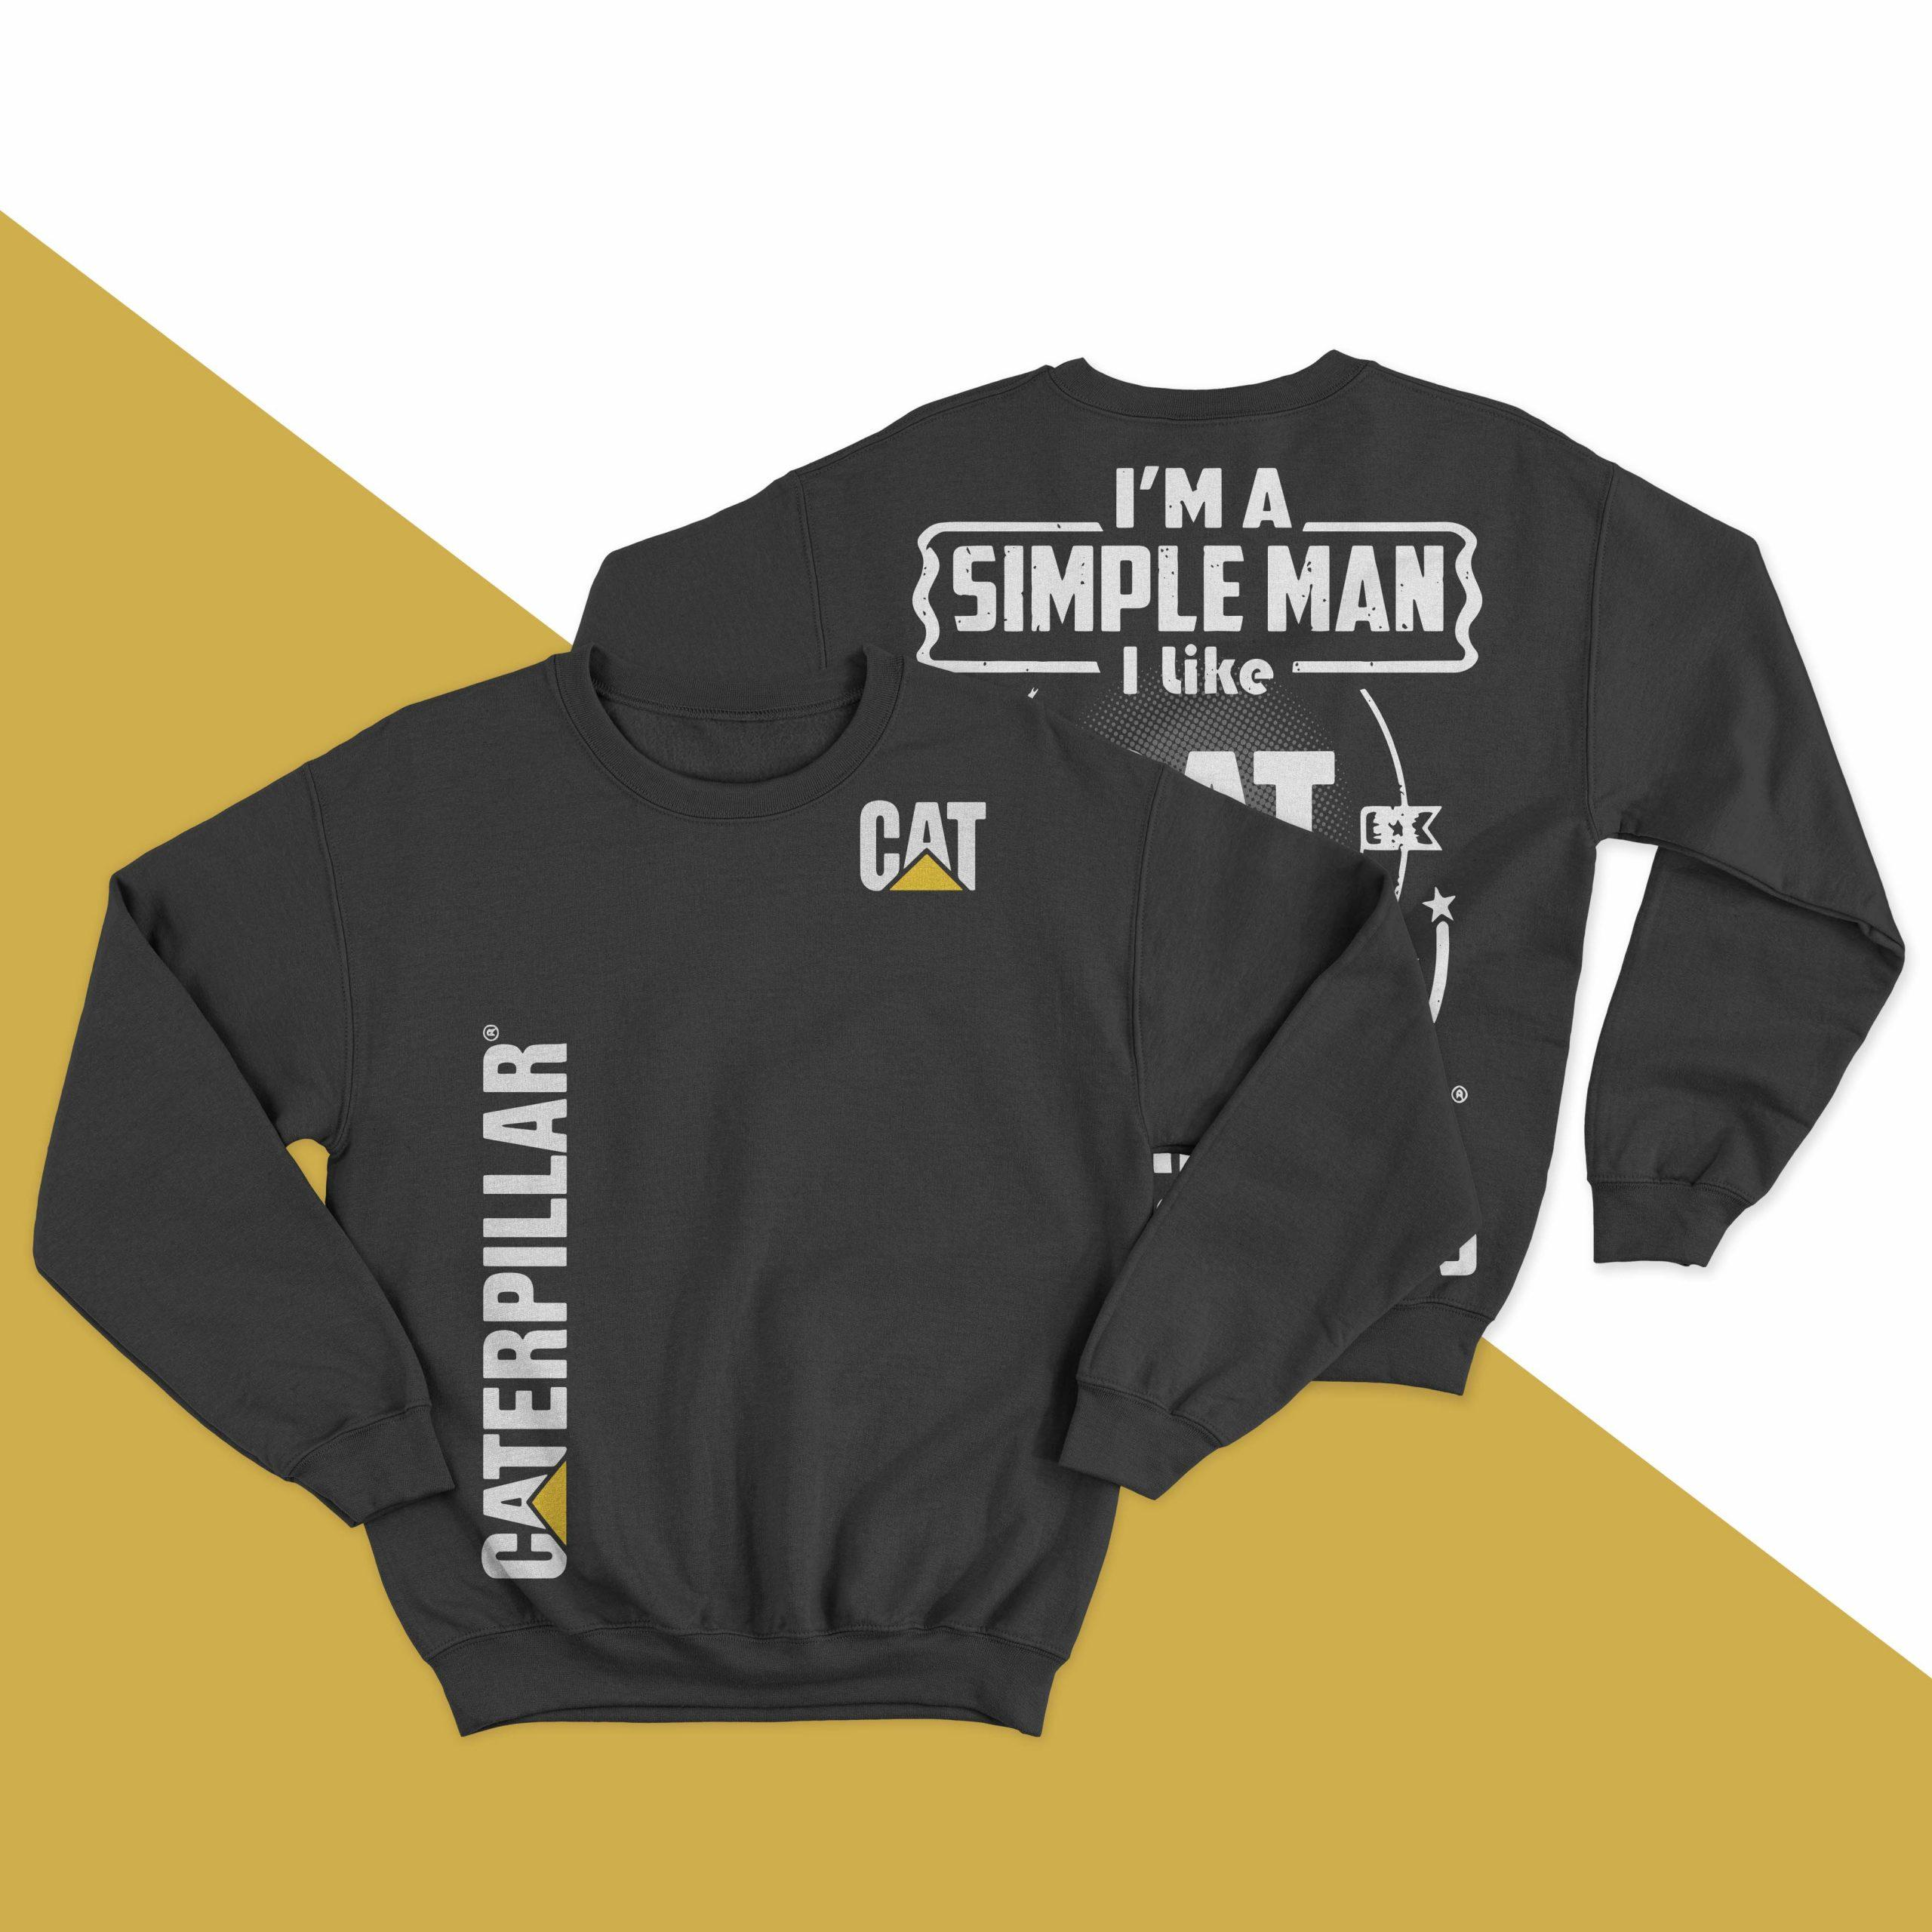 I'm A Simple Man I Like Cat Caterpillar Beer And Boobs Sweater